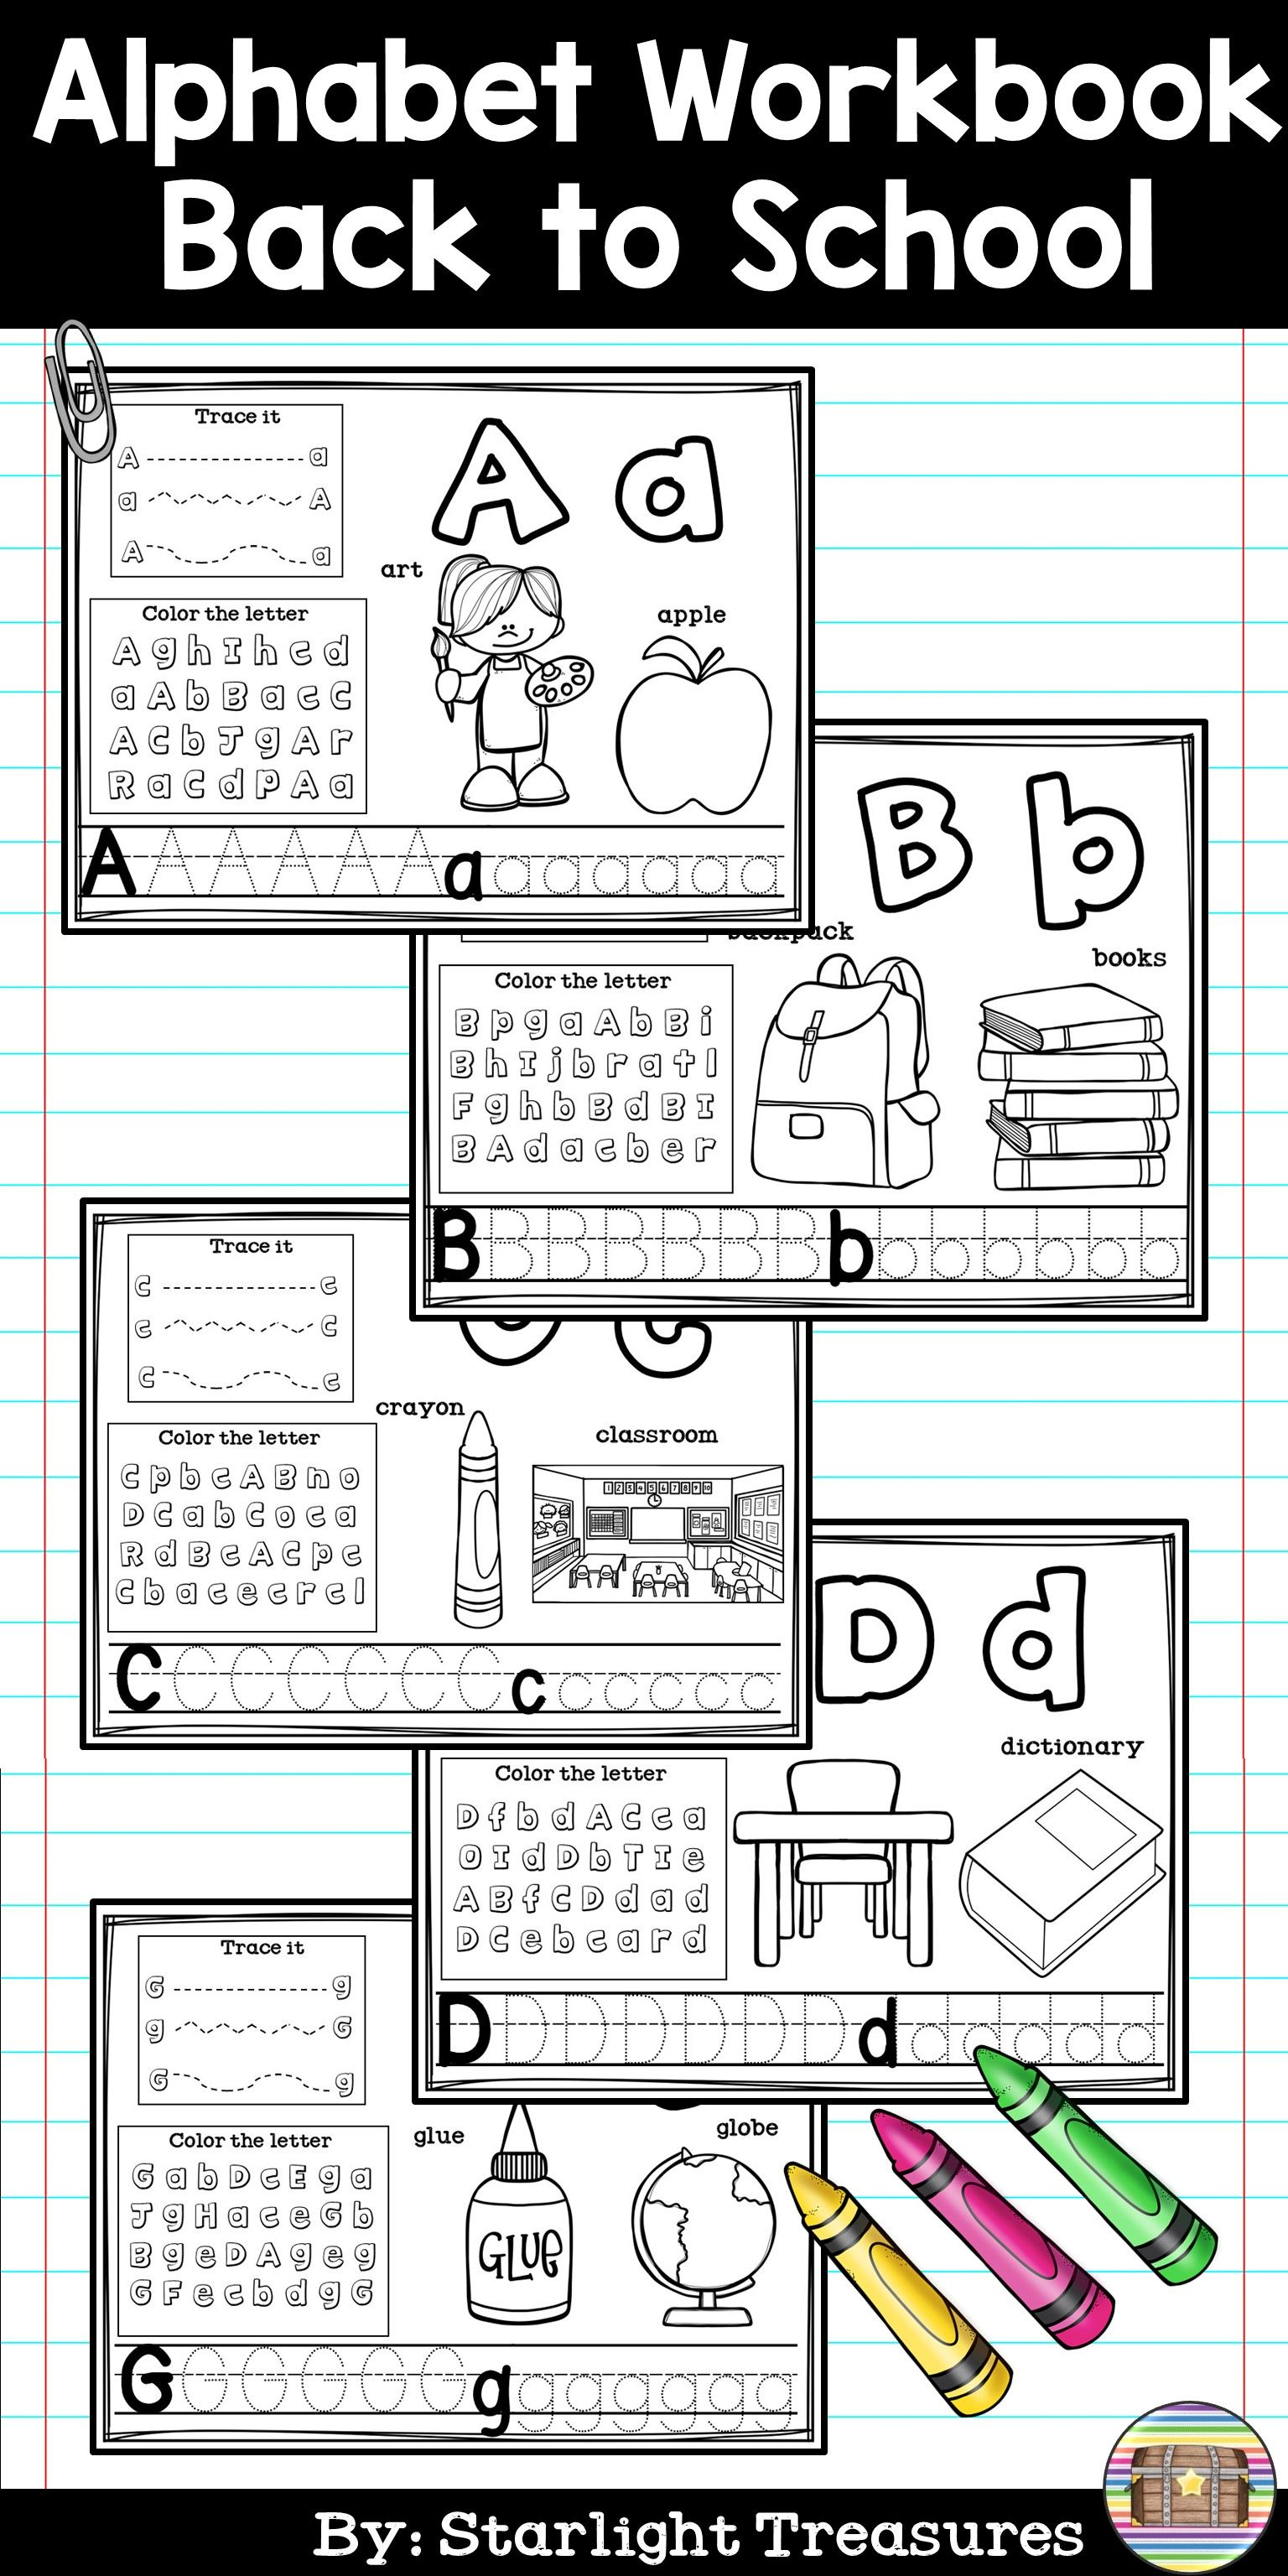 Alphabet Workbook Worksheets A Z Back To School Theme